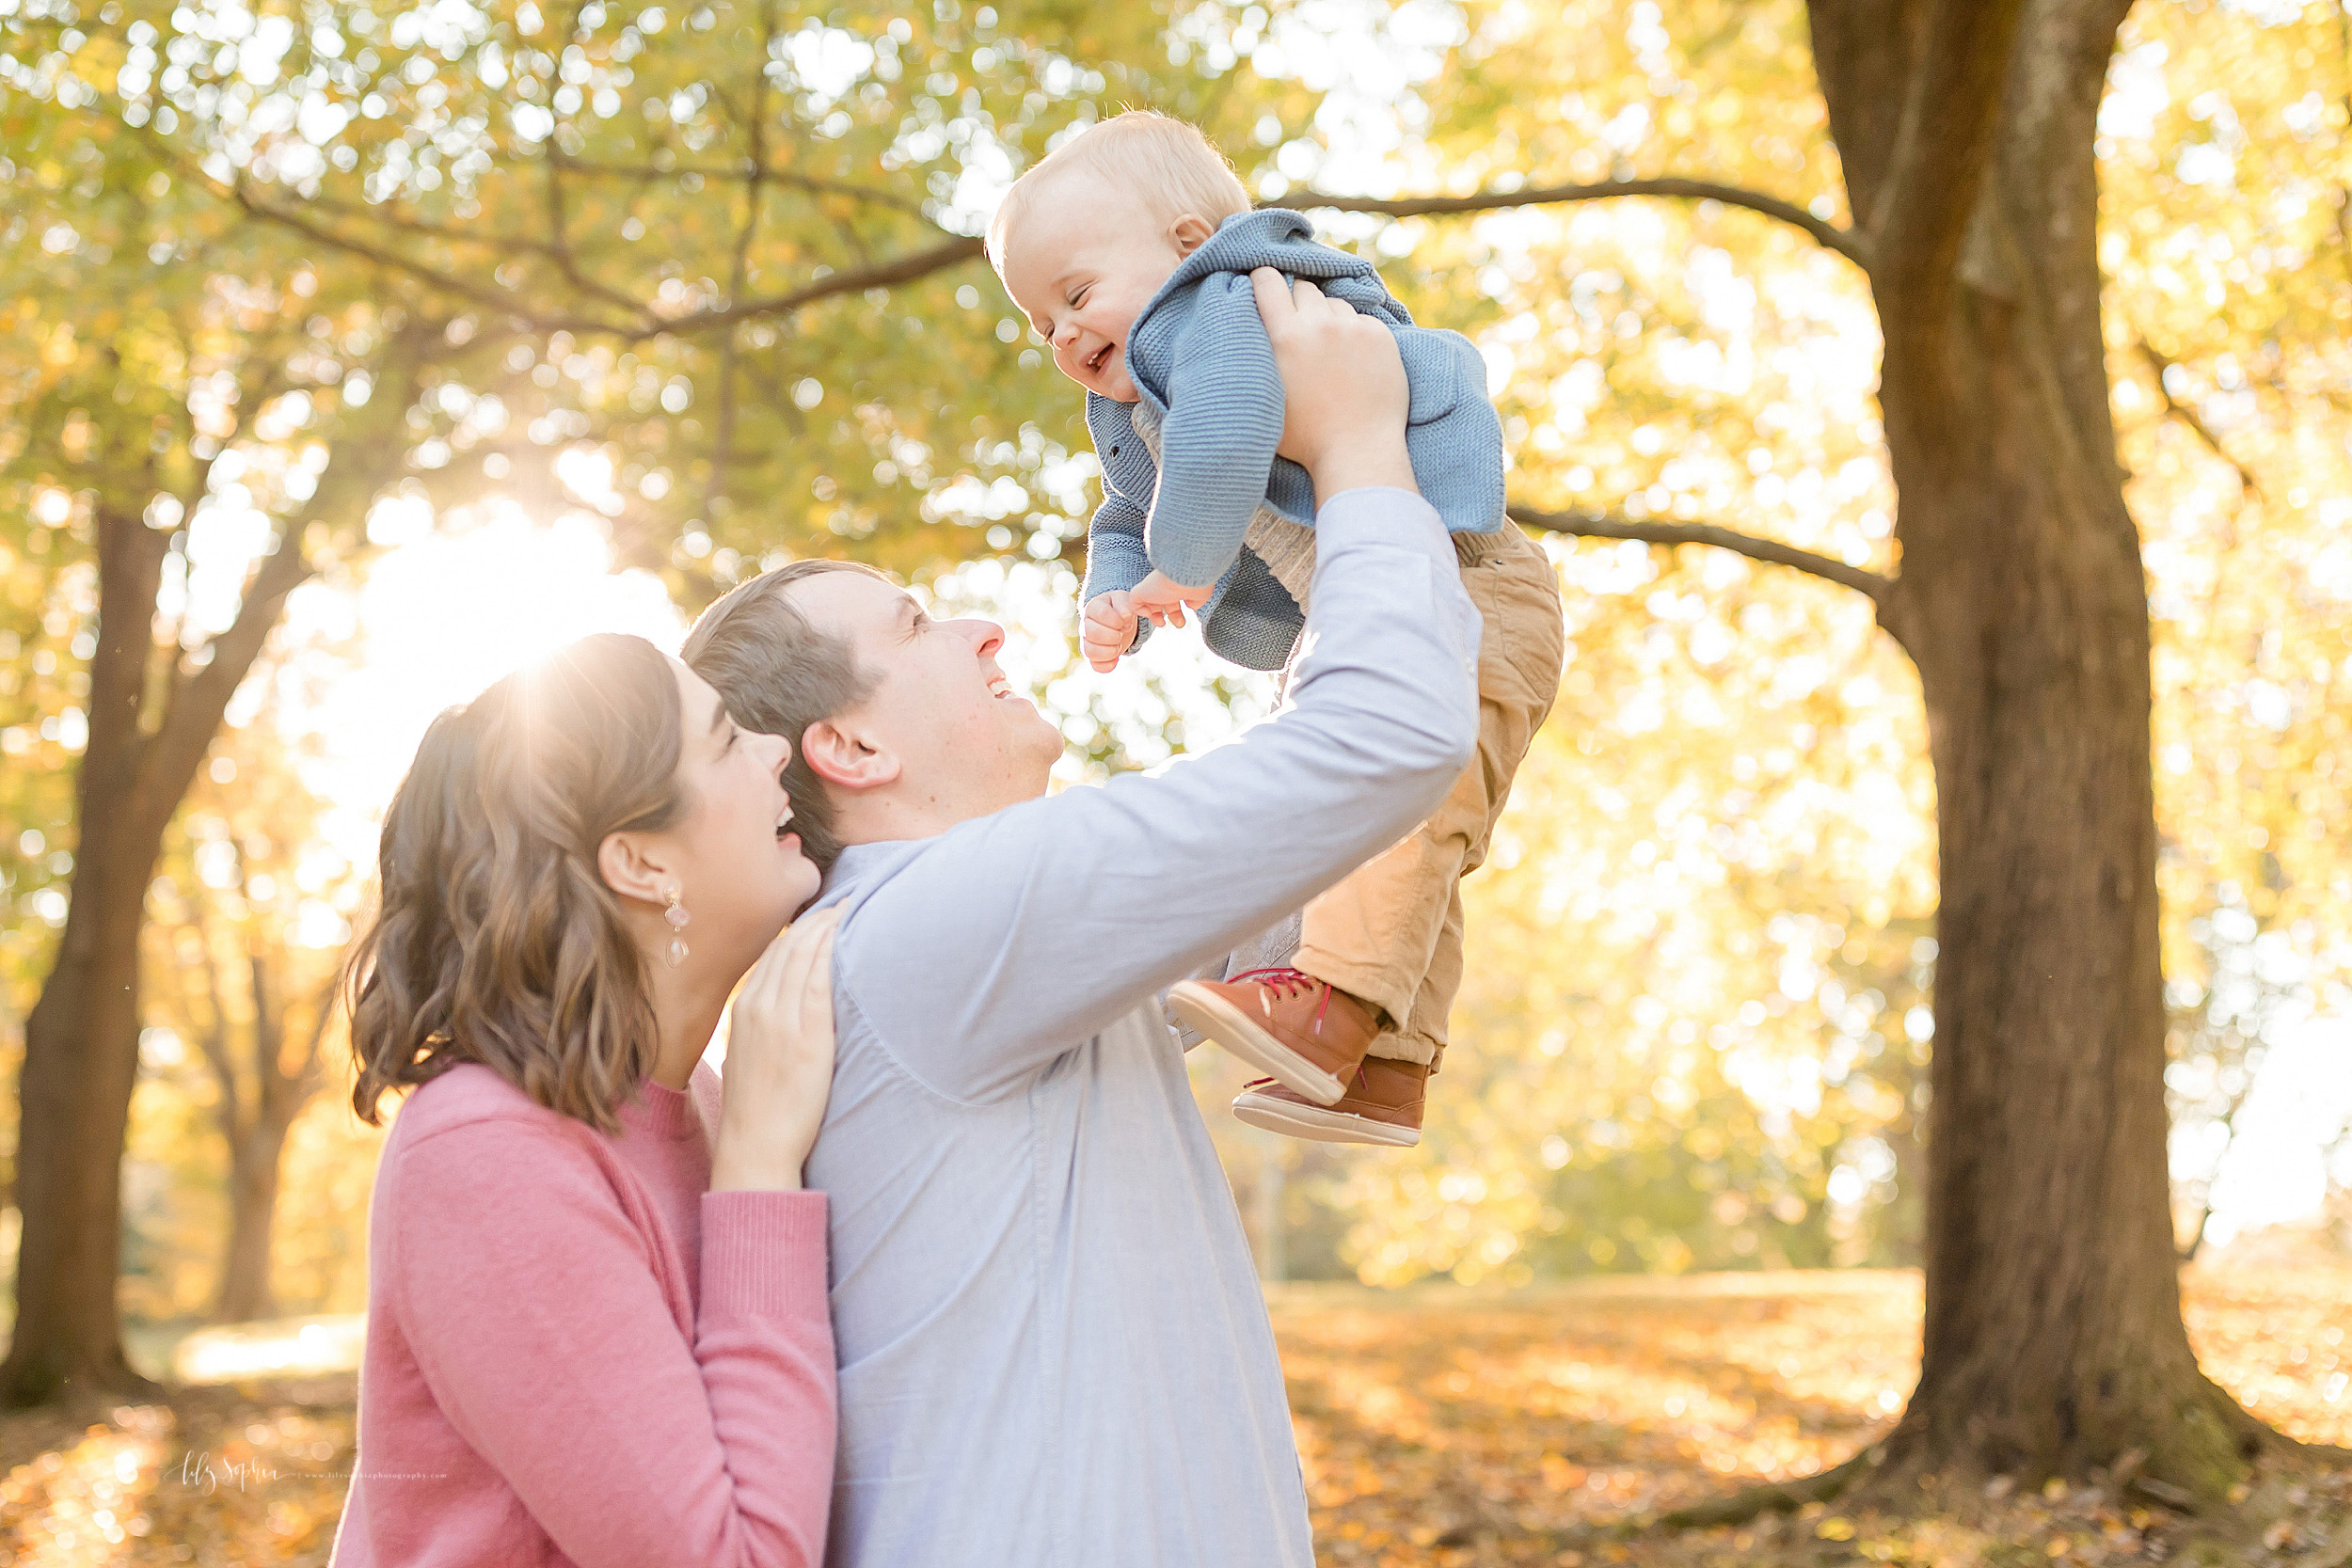 Family photo of a happy family of three in a park as they play in Atlanta in autumn at sunset.  Mom is standing behind dad and has her right arm on dad's right shoulder.  Dad is lifting his one year old son up above his head as the baby boy giggles and the parents smile.